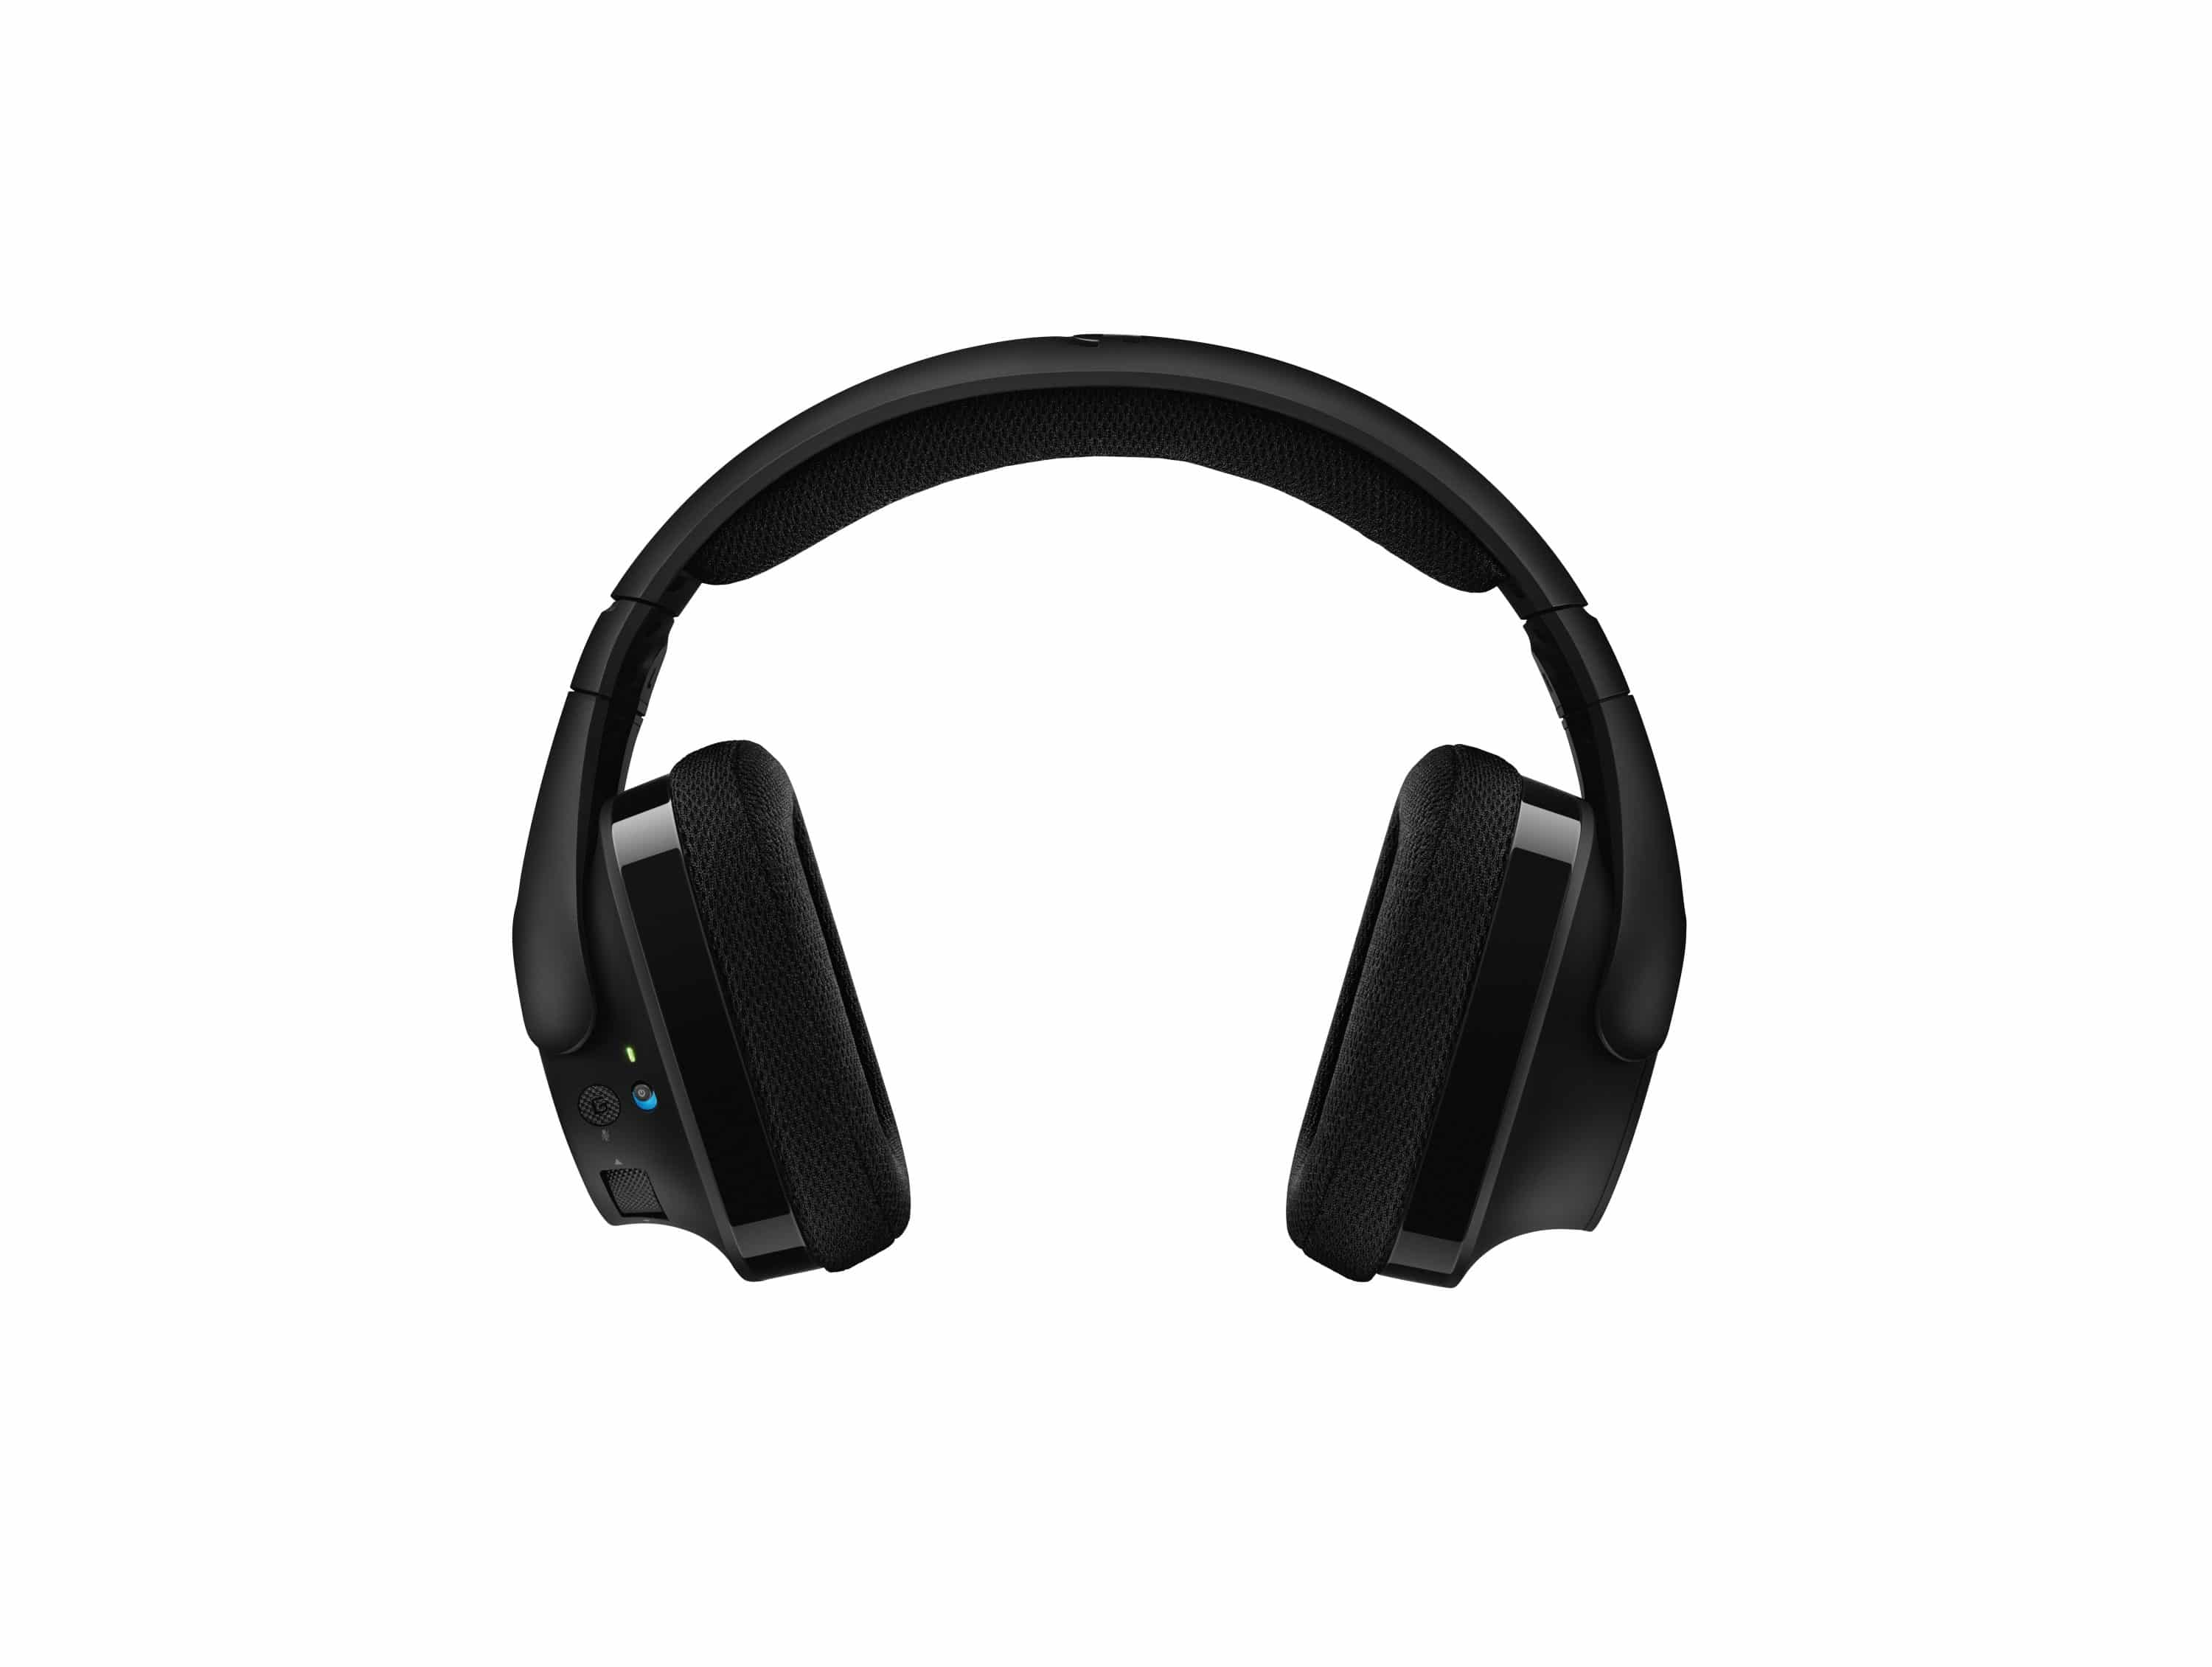 Photo of Logitech G533: Neues kabelloses Gaming-Headset